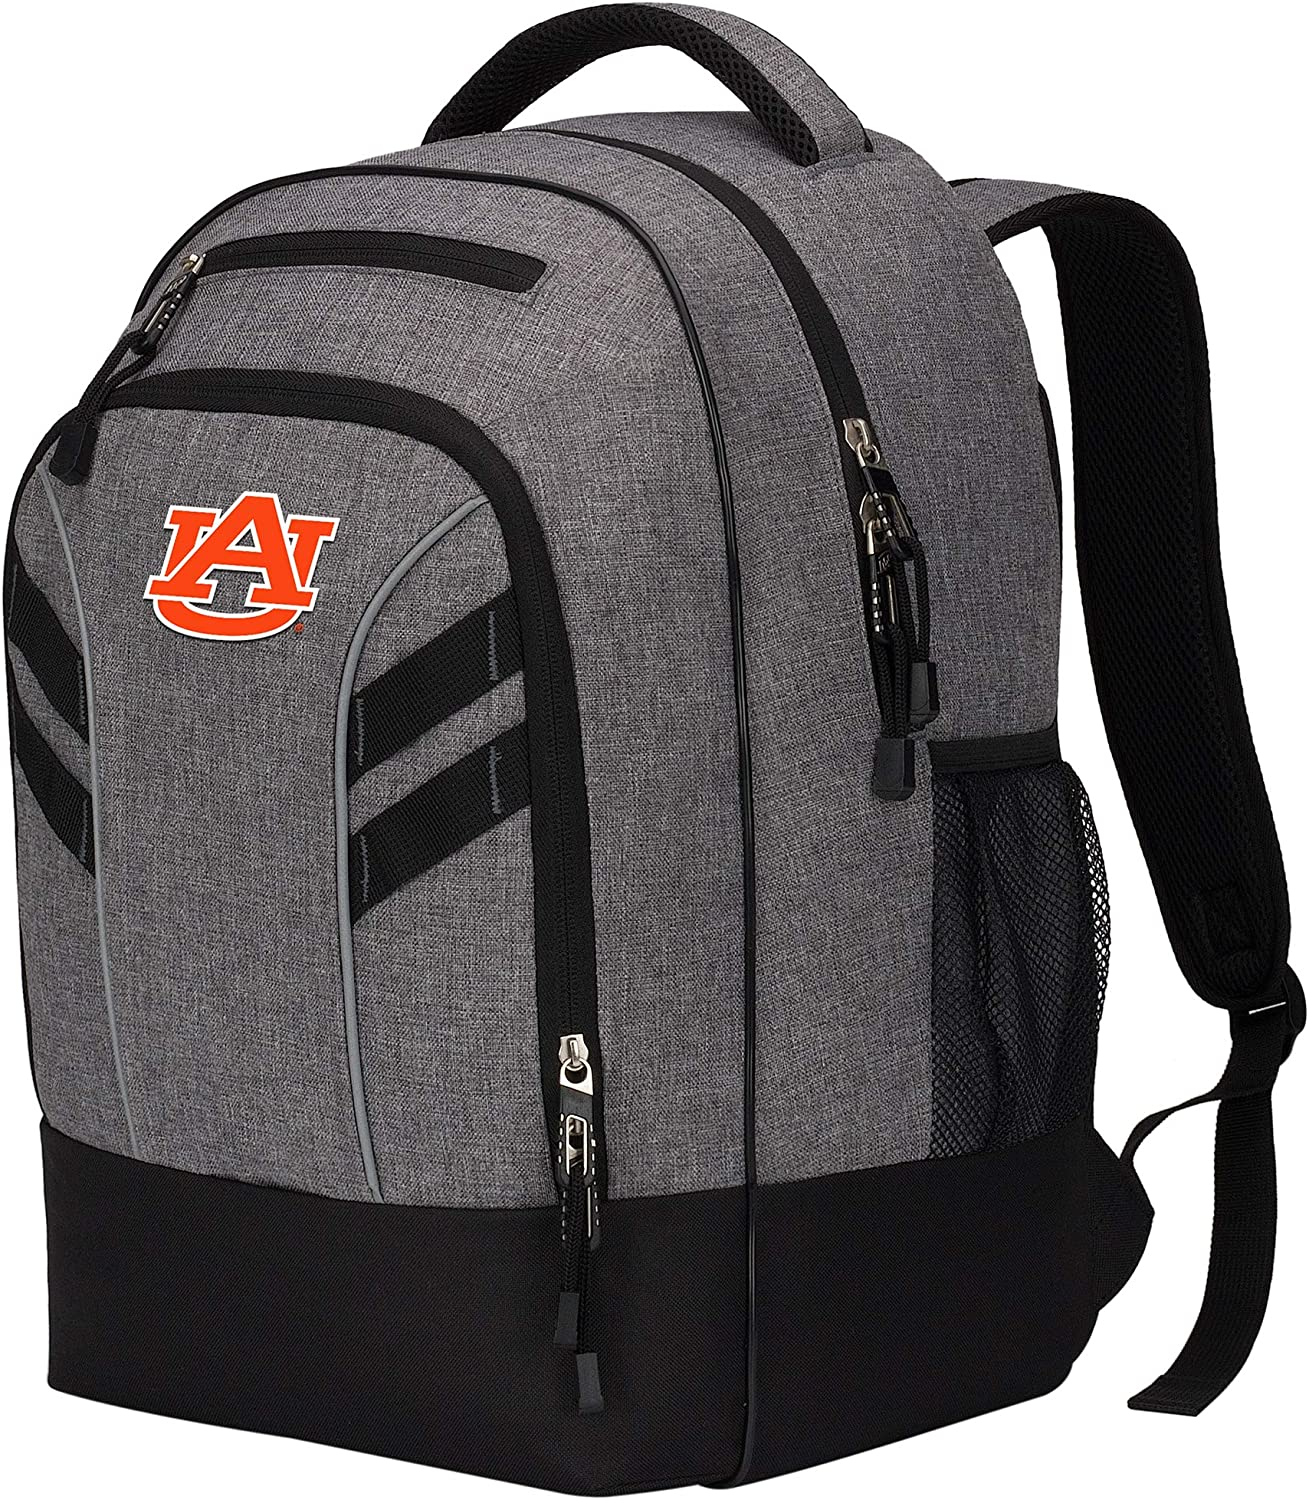 19 The Northwest Company Officially Licensed NCAA Razor Backpack Multi Color